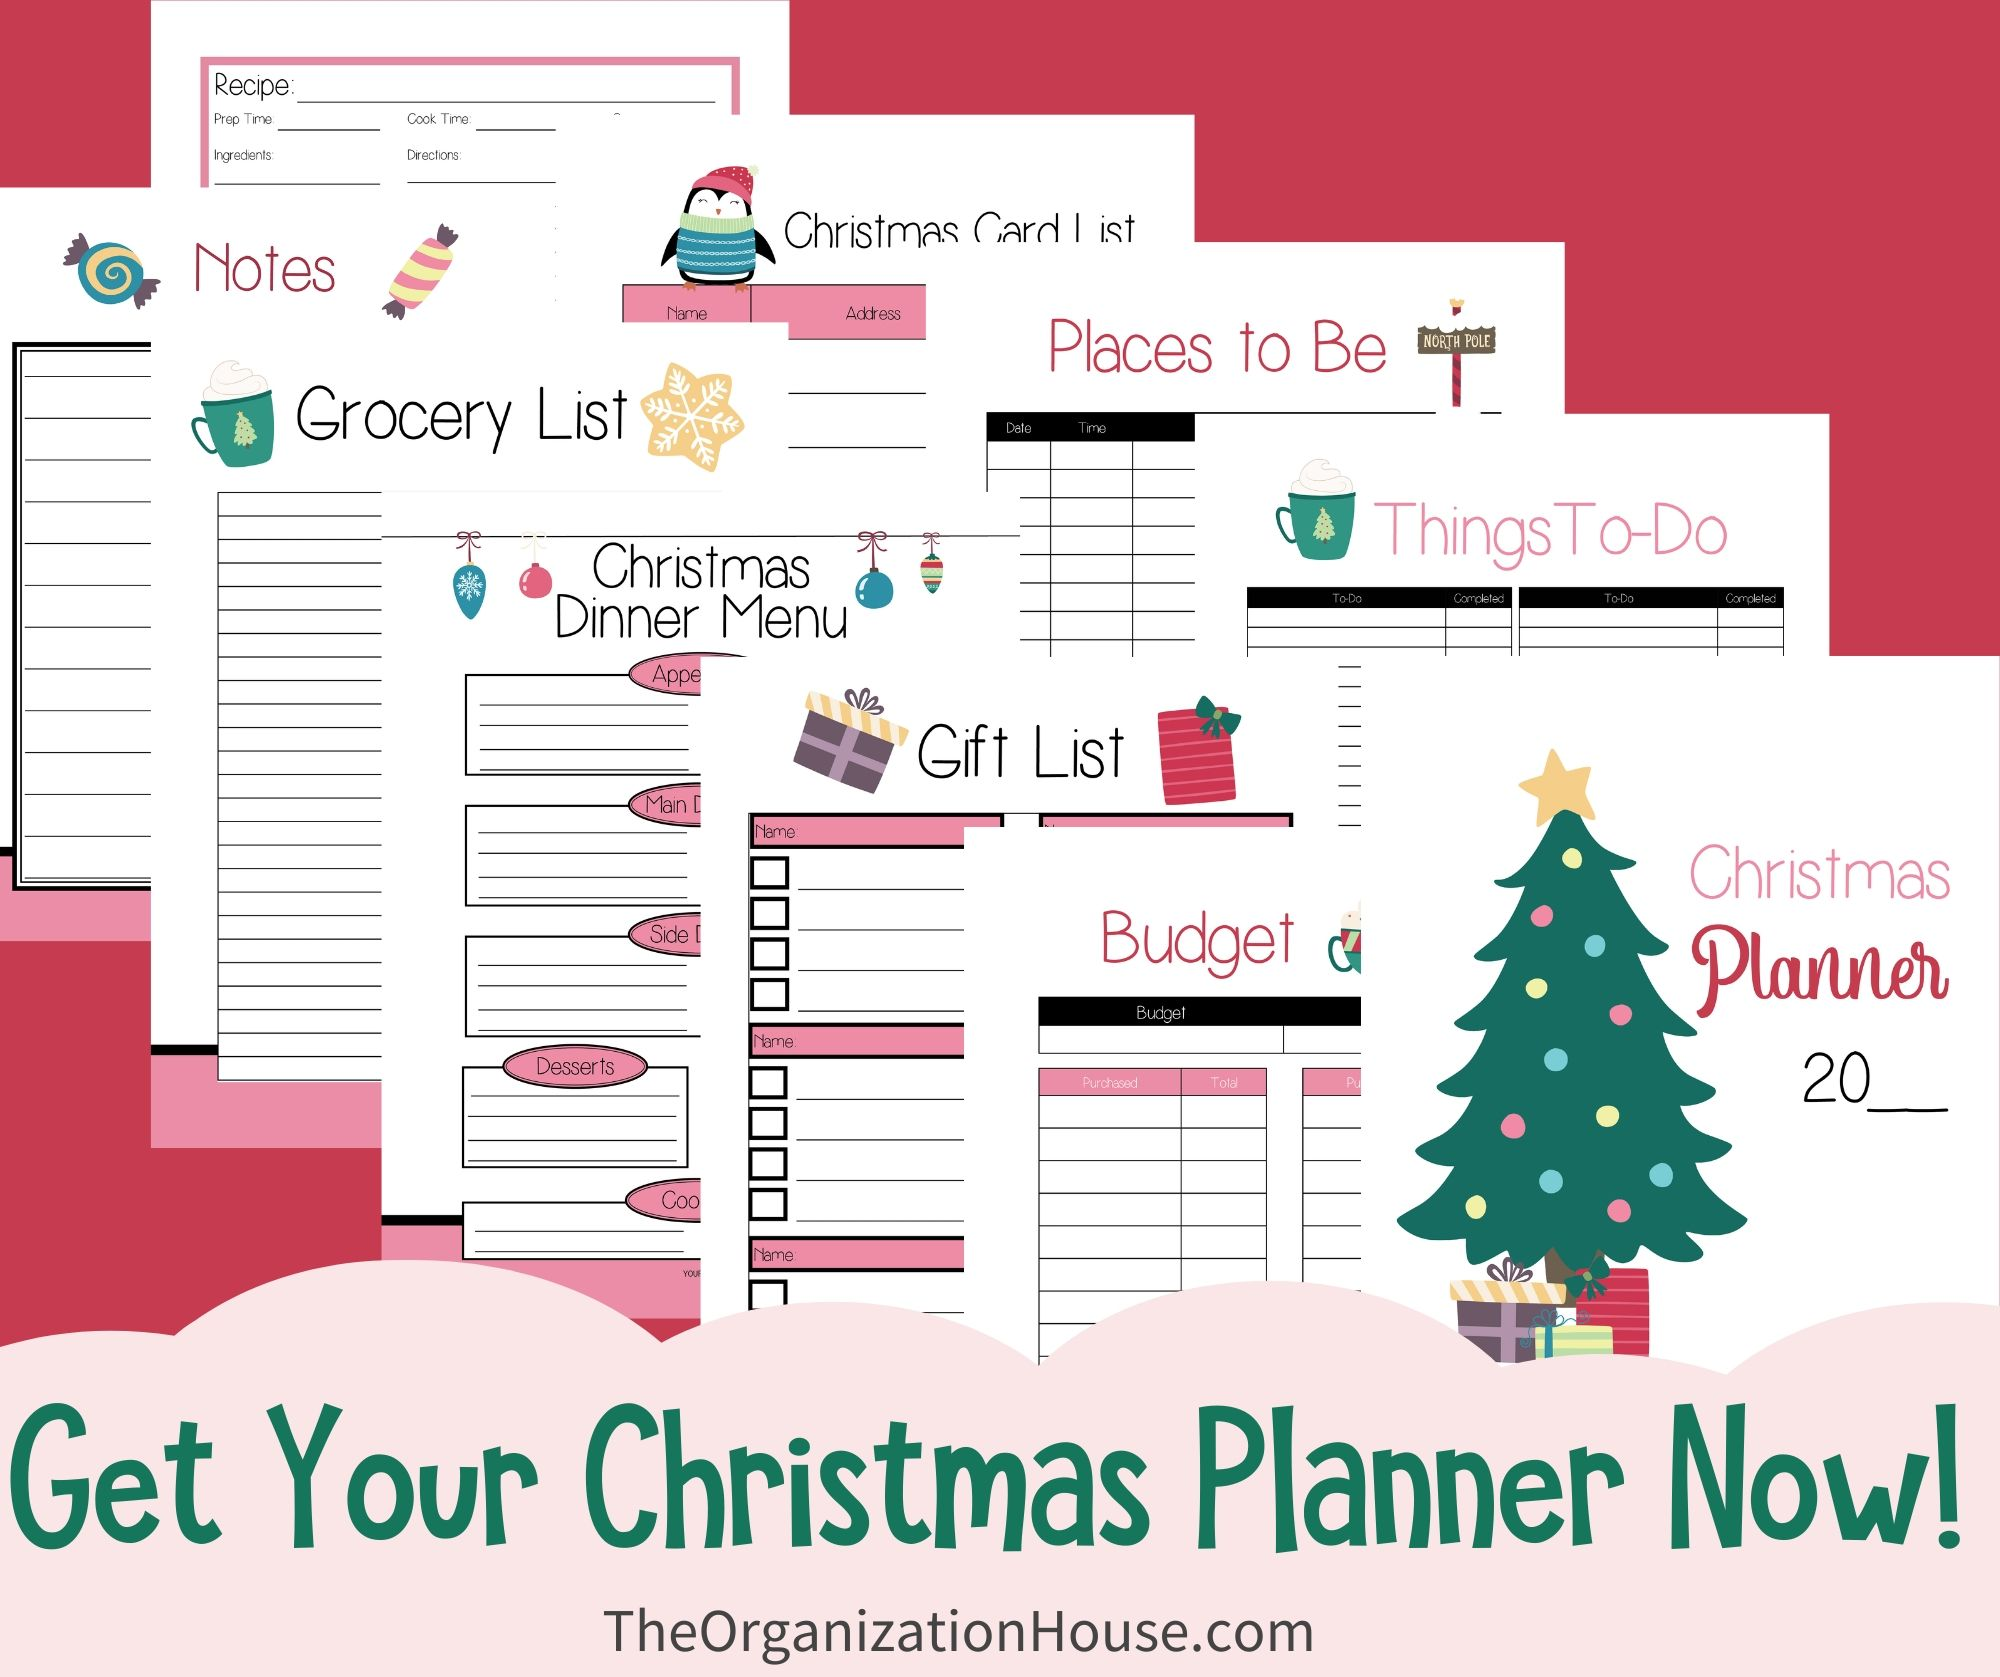 Get Your Christmas Planner Now for an Organized Christmas! - TheOrganizationHouse.com